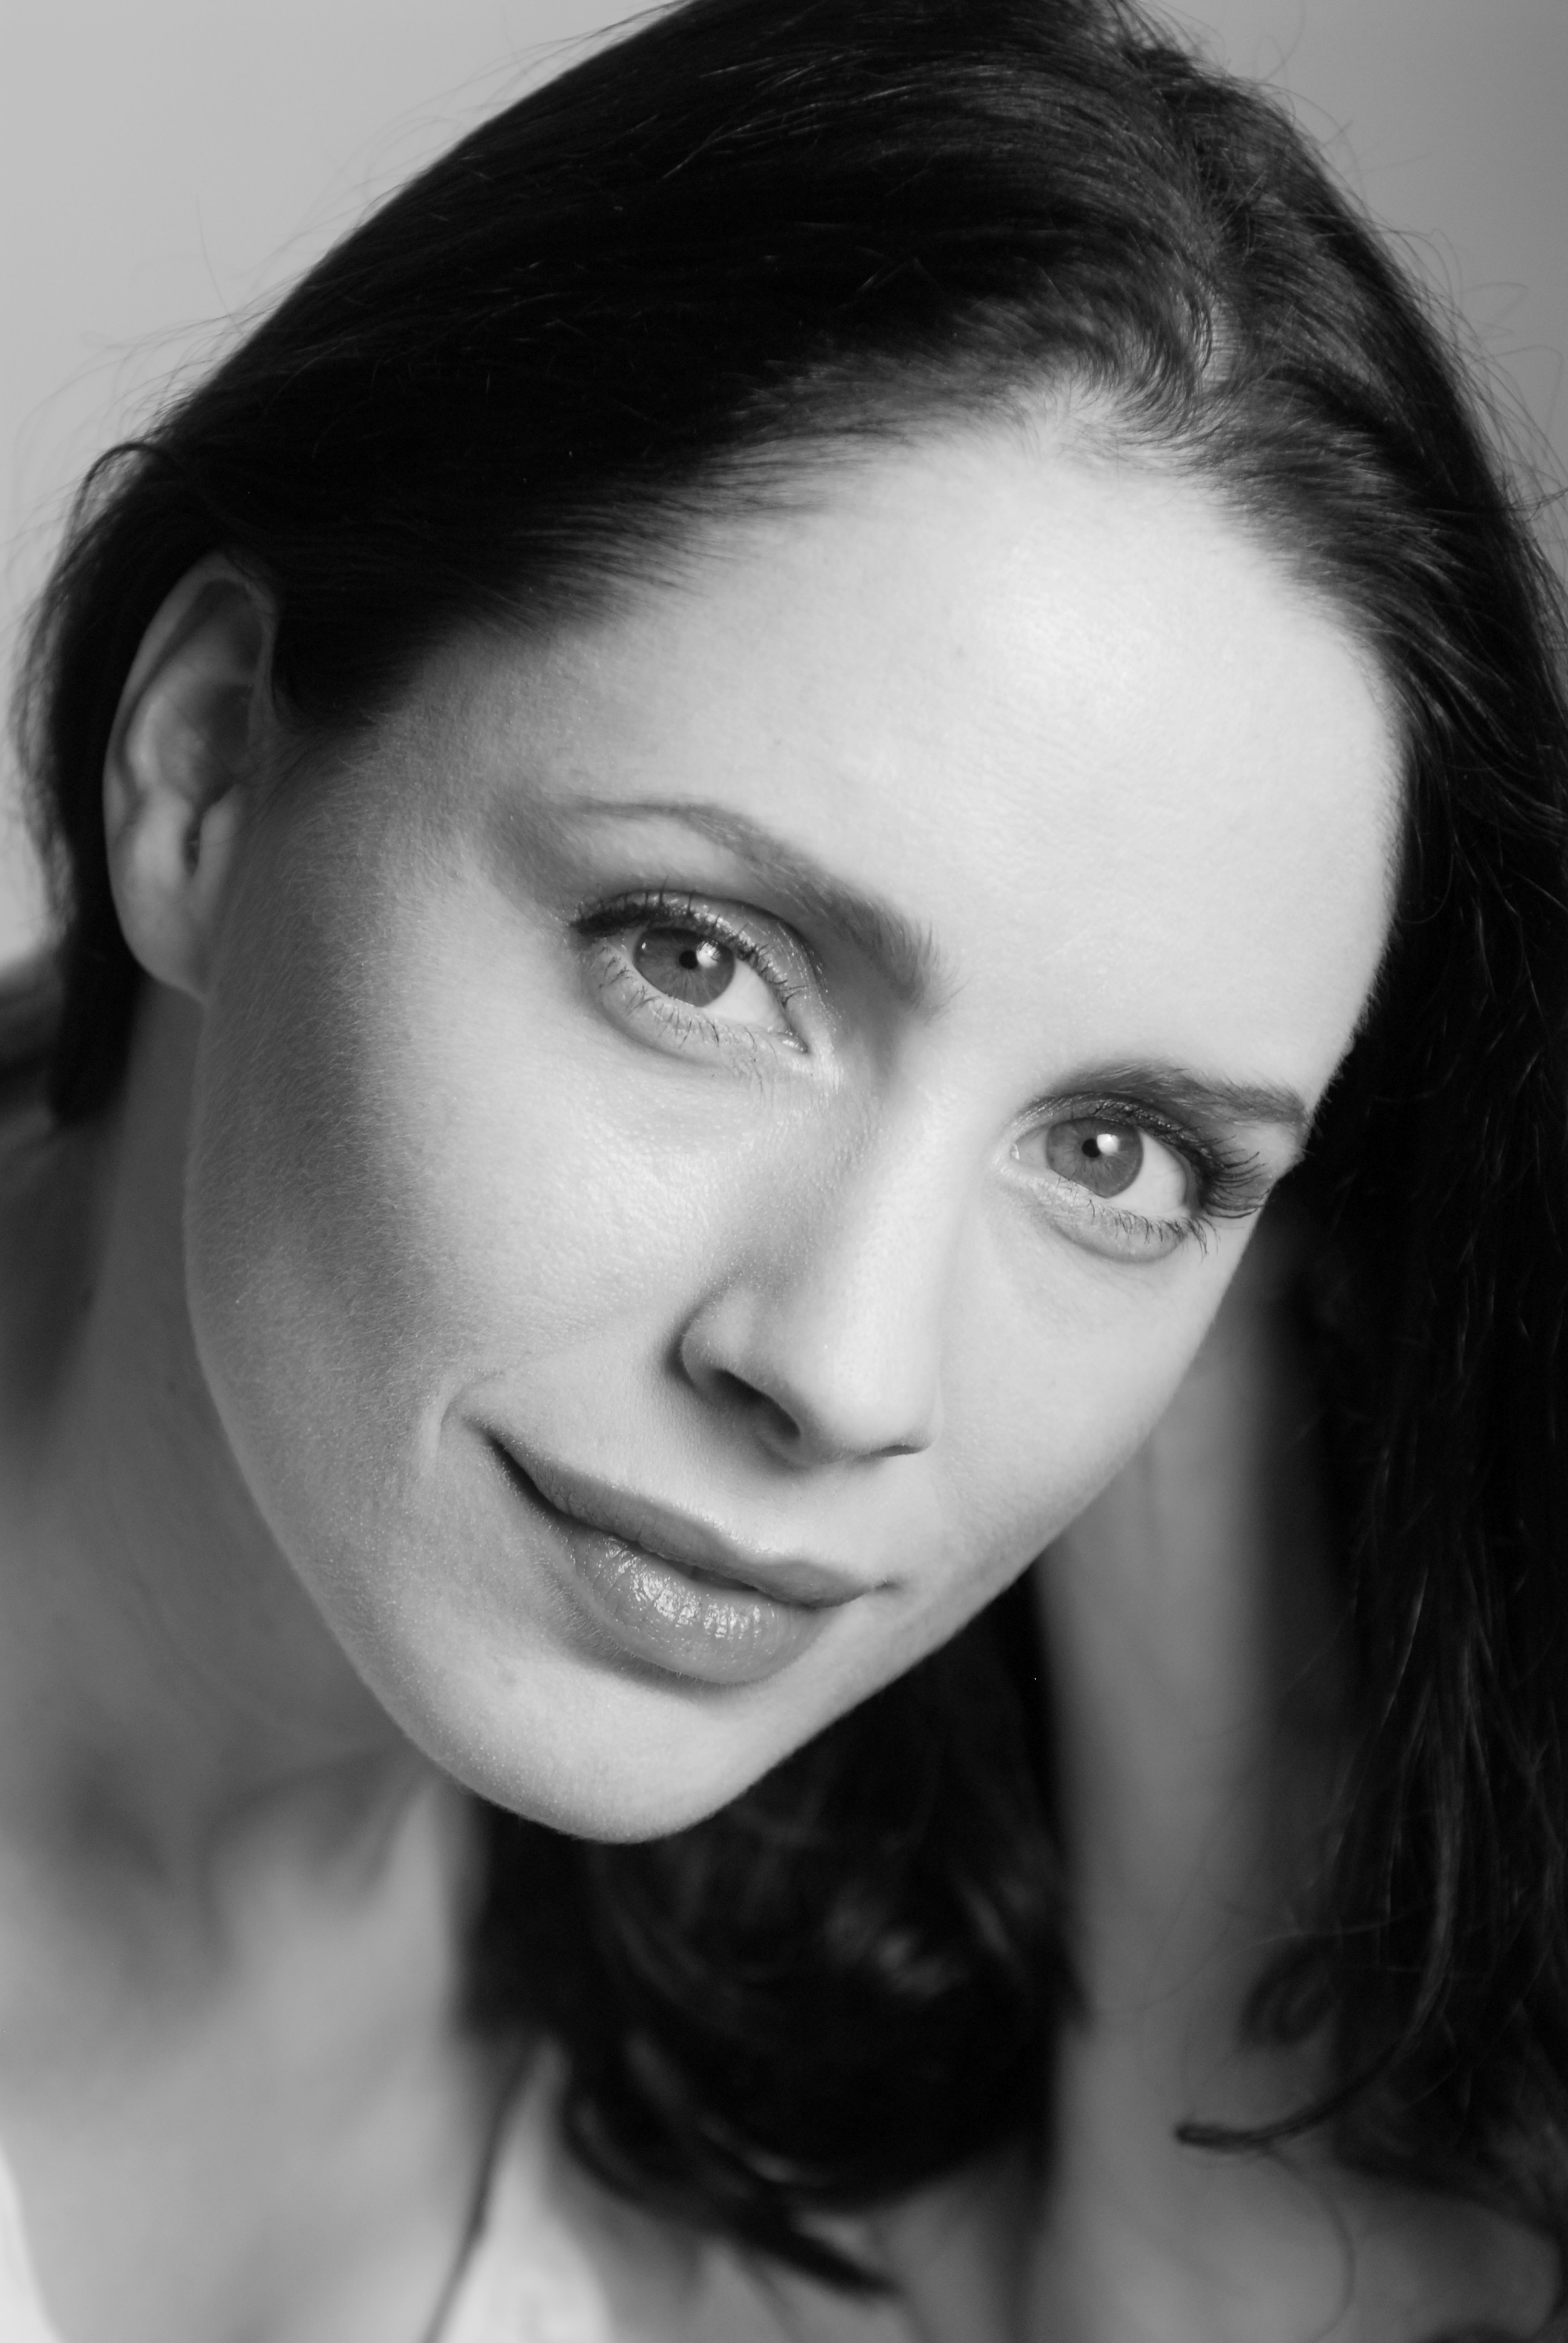 Laura Fraser: El bomboncito de Breaking Bad